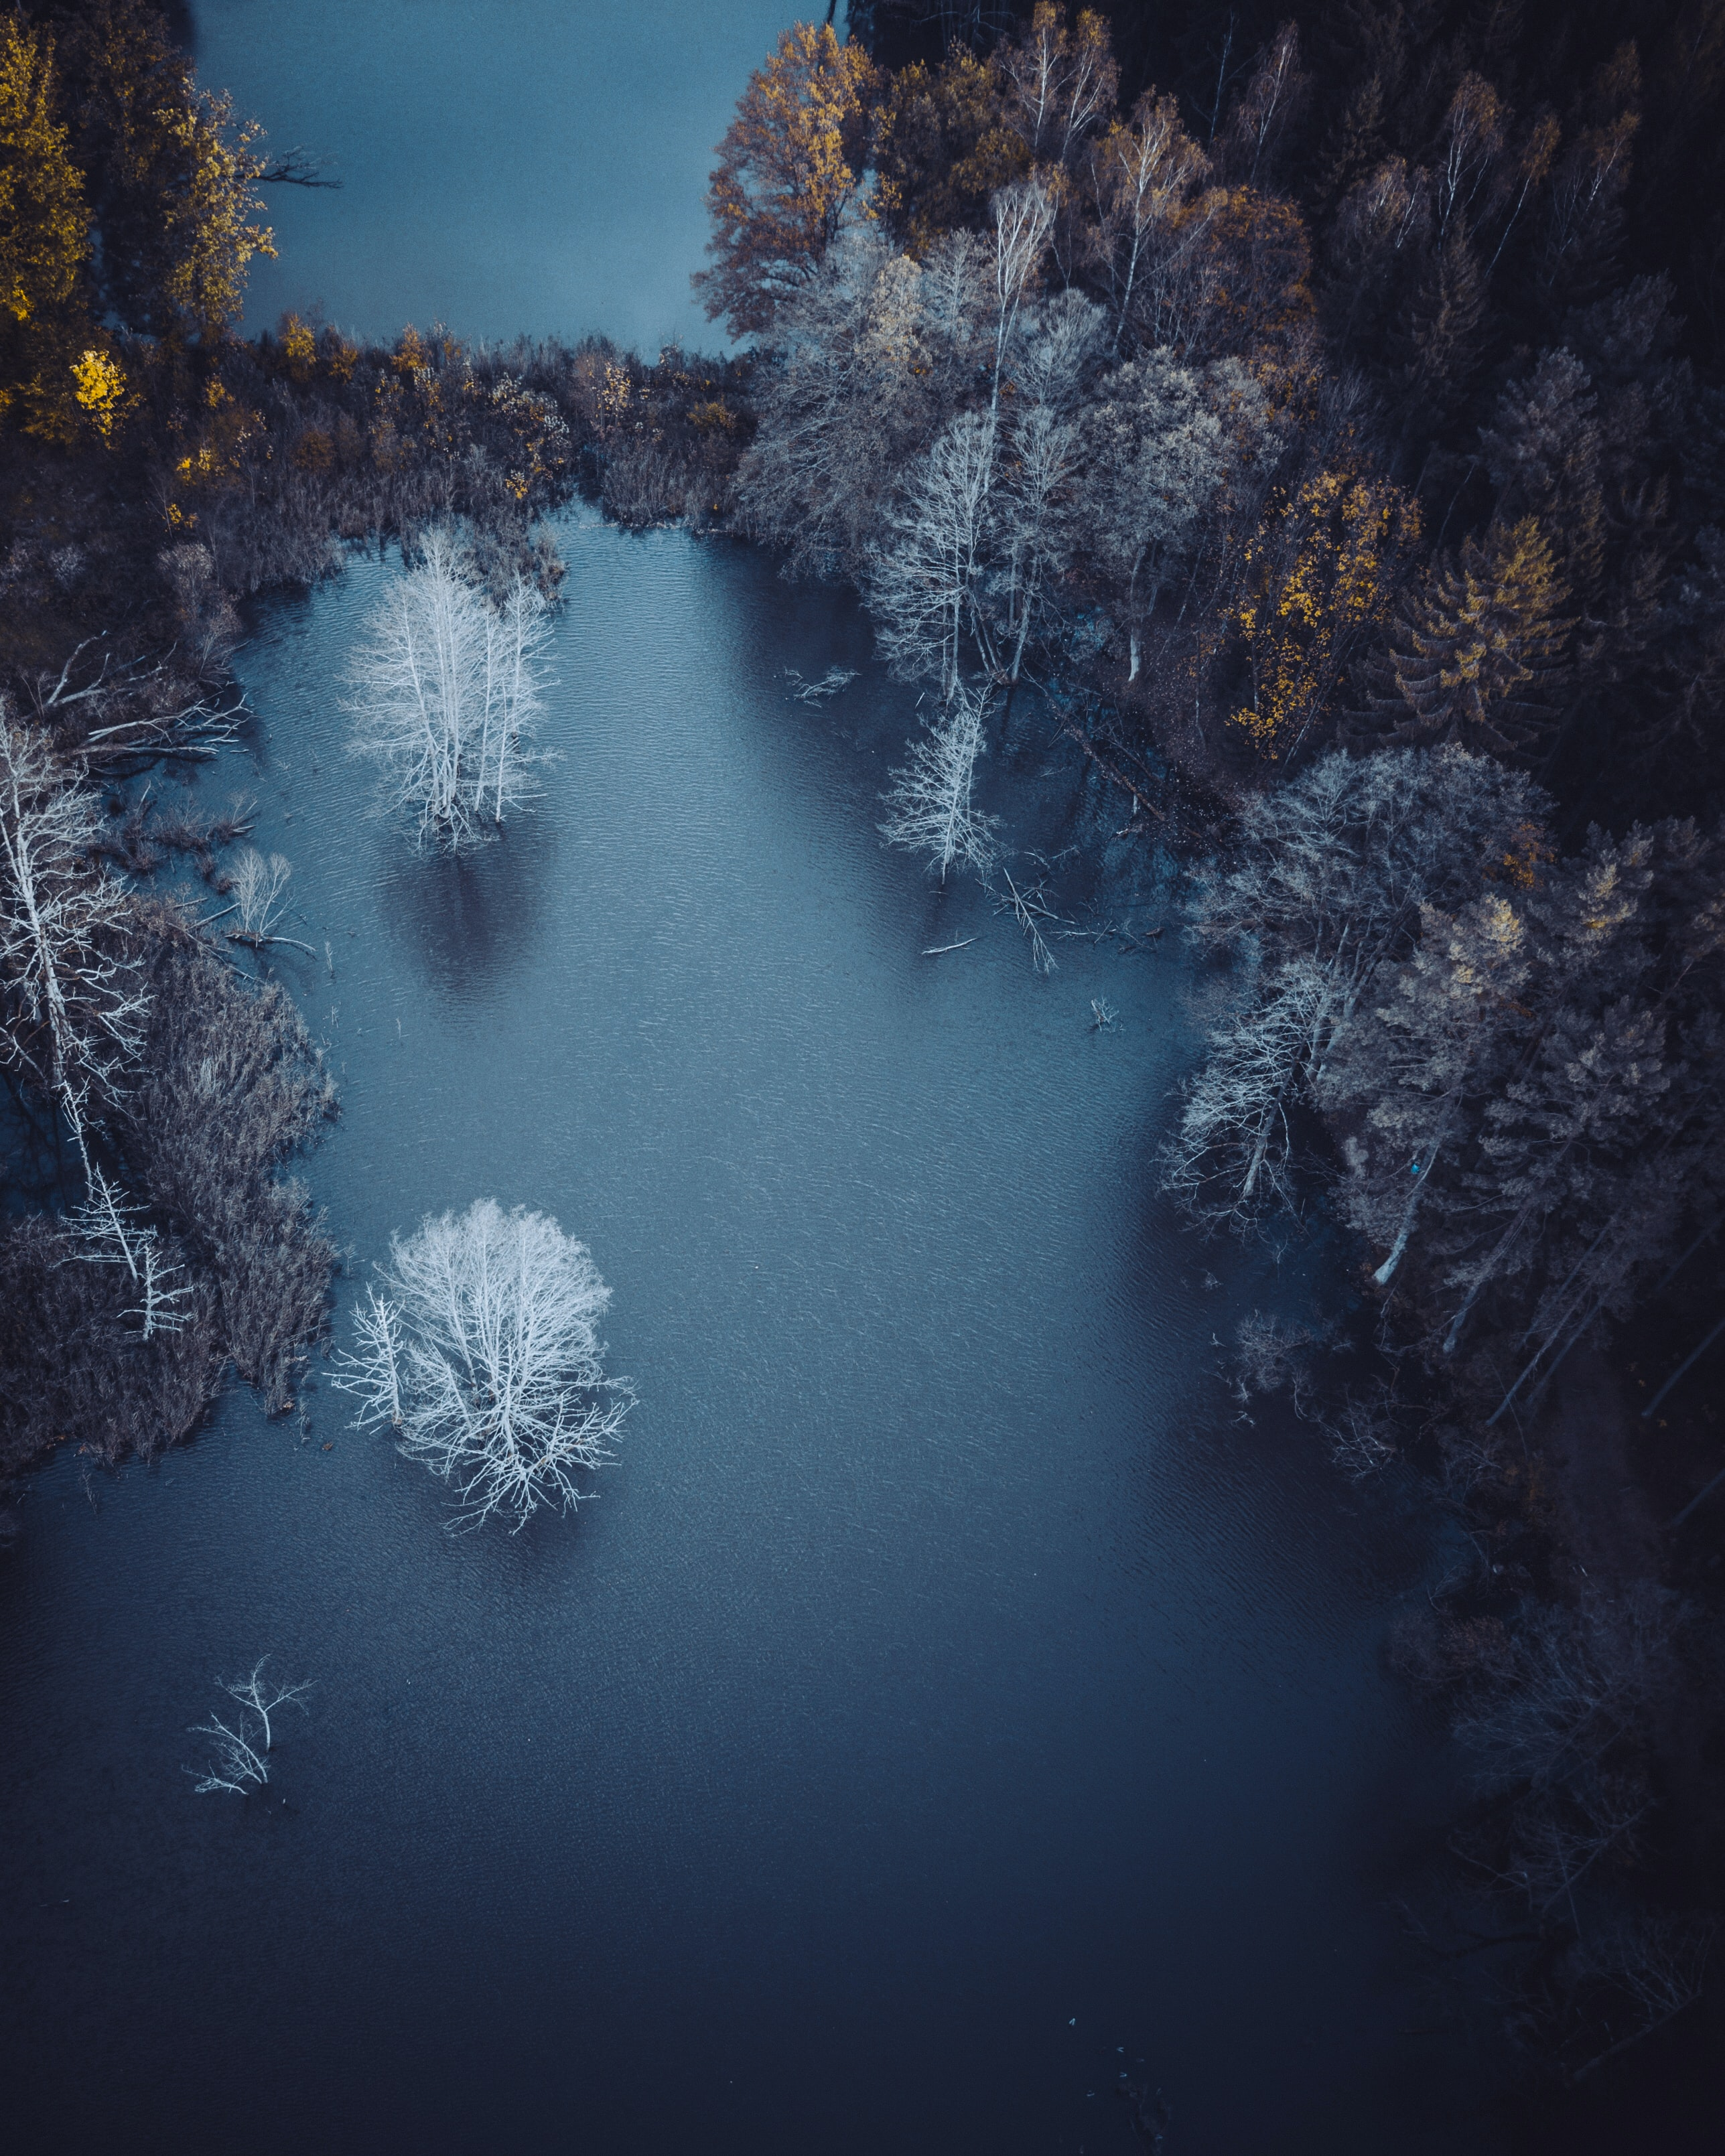 aerial view of body of water near trees